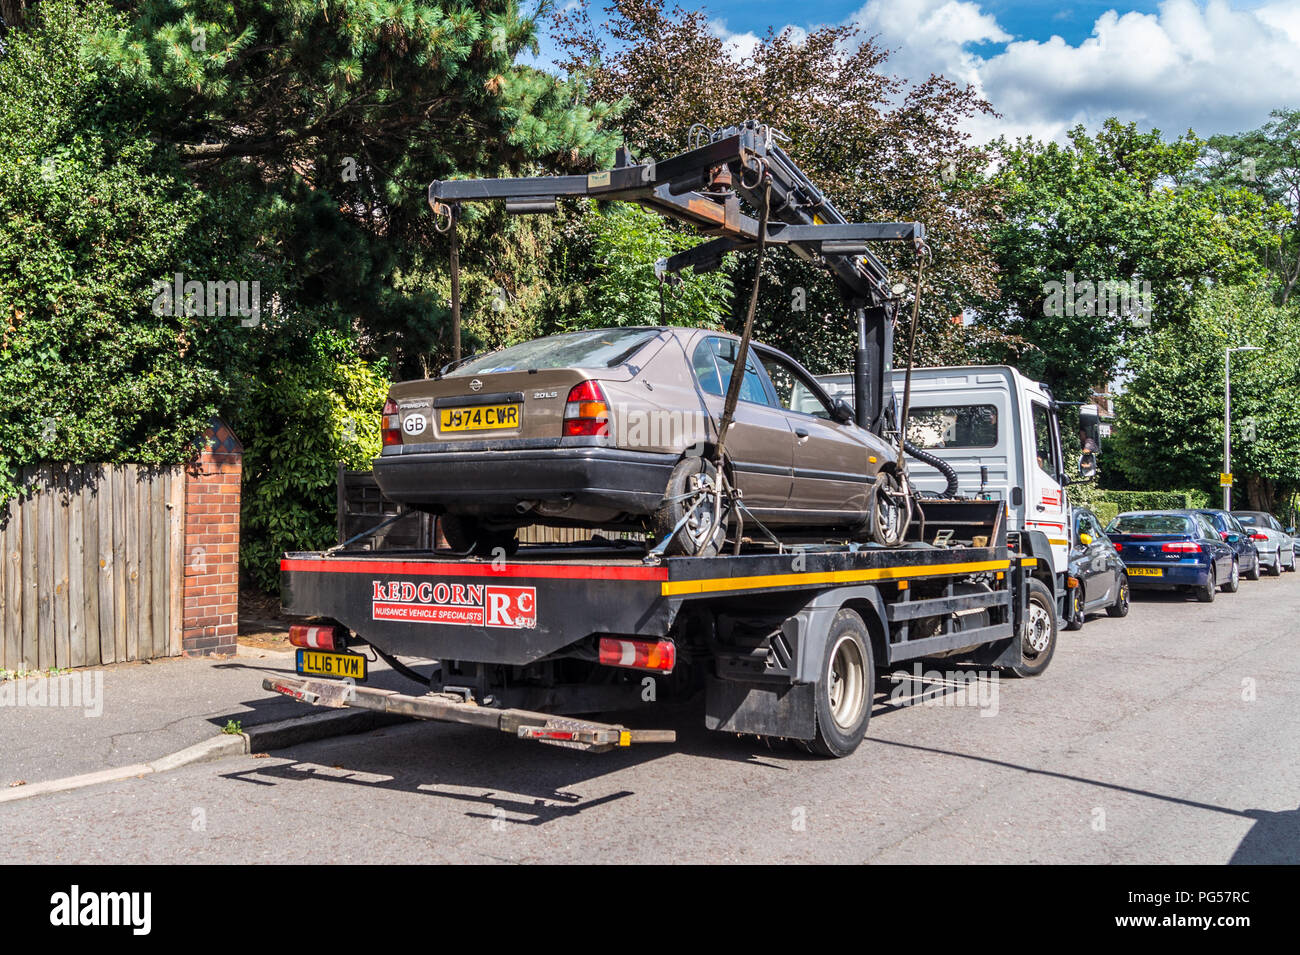 a-1992-nissan-primera-20-lsi-automatic-hatchback-car-being-lifted-onto-a-mercedes-atego-recovery-lorry-for-recycling-south-woodford-london-england-PG57RC.jpg